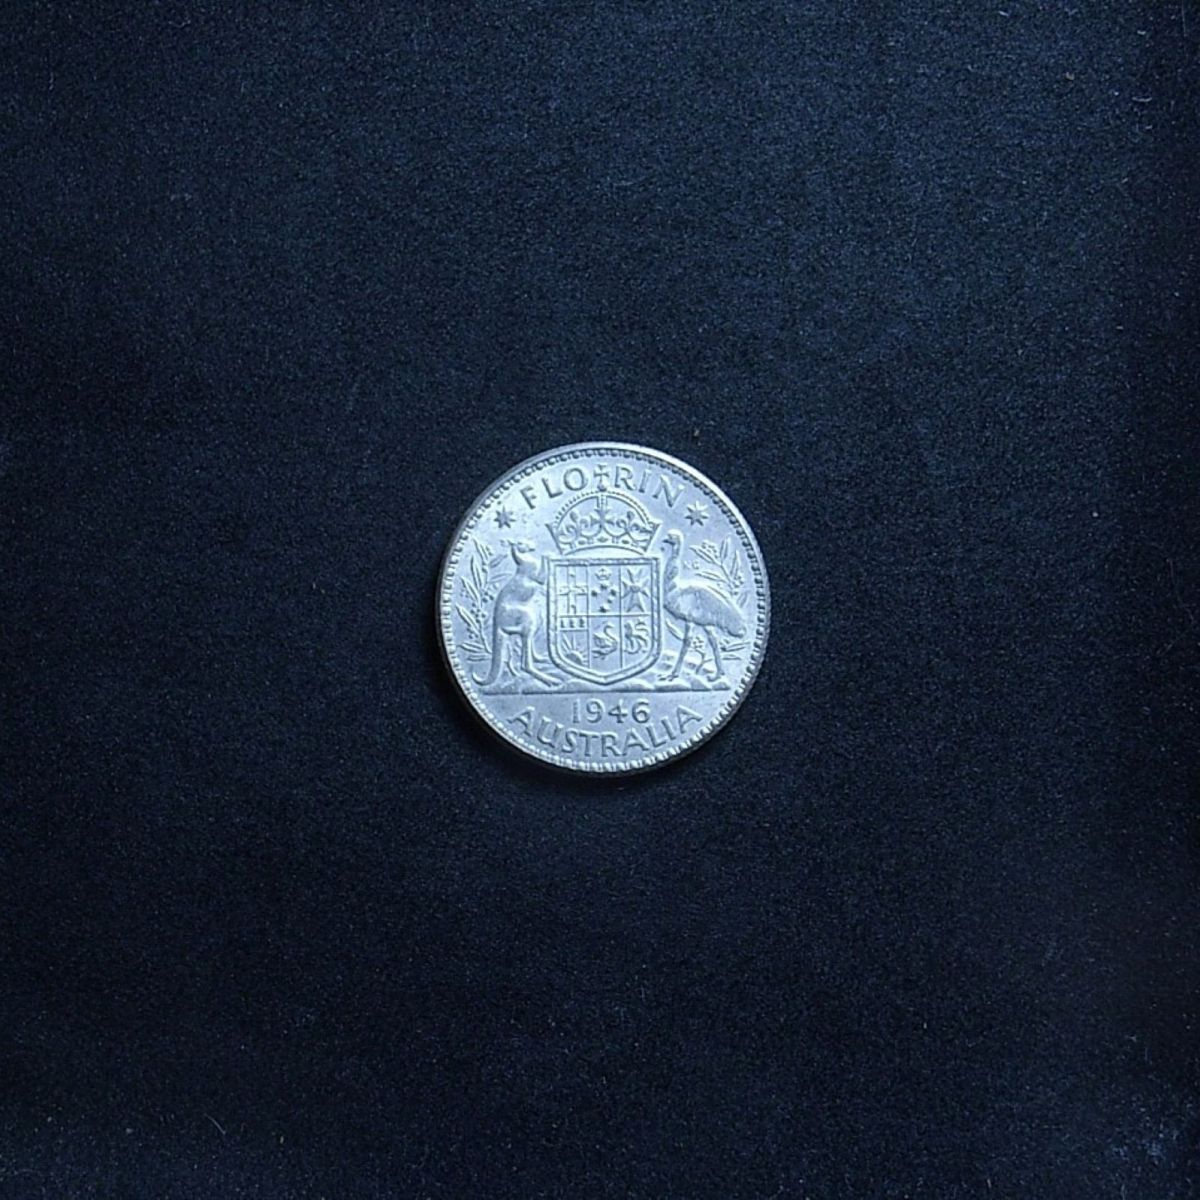 Aussie 1946 florin reverse showing lustre of the coin